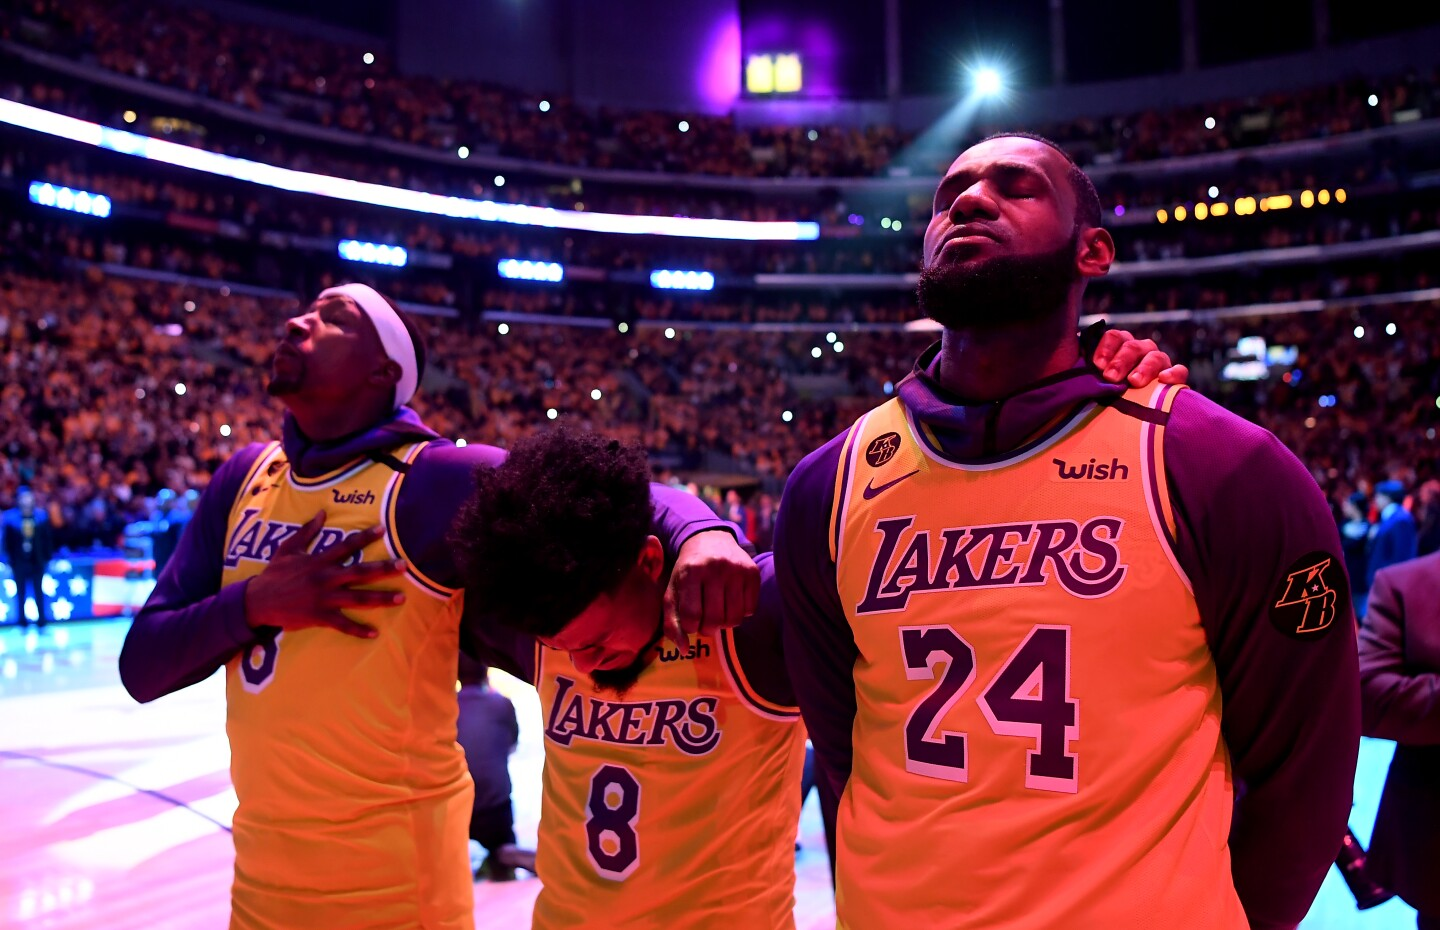 Kentavious Caldwell-Pope, Quinn Cook, and LeBron James close their eyes during a tribute to Kobe Bryant on Jan. 31 at Staples Center.